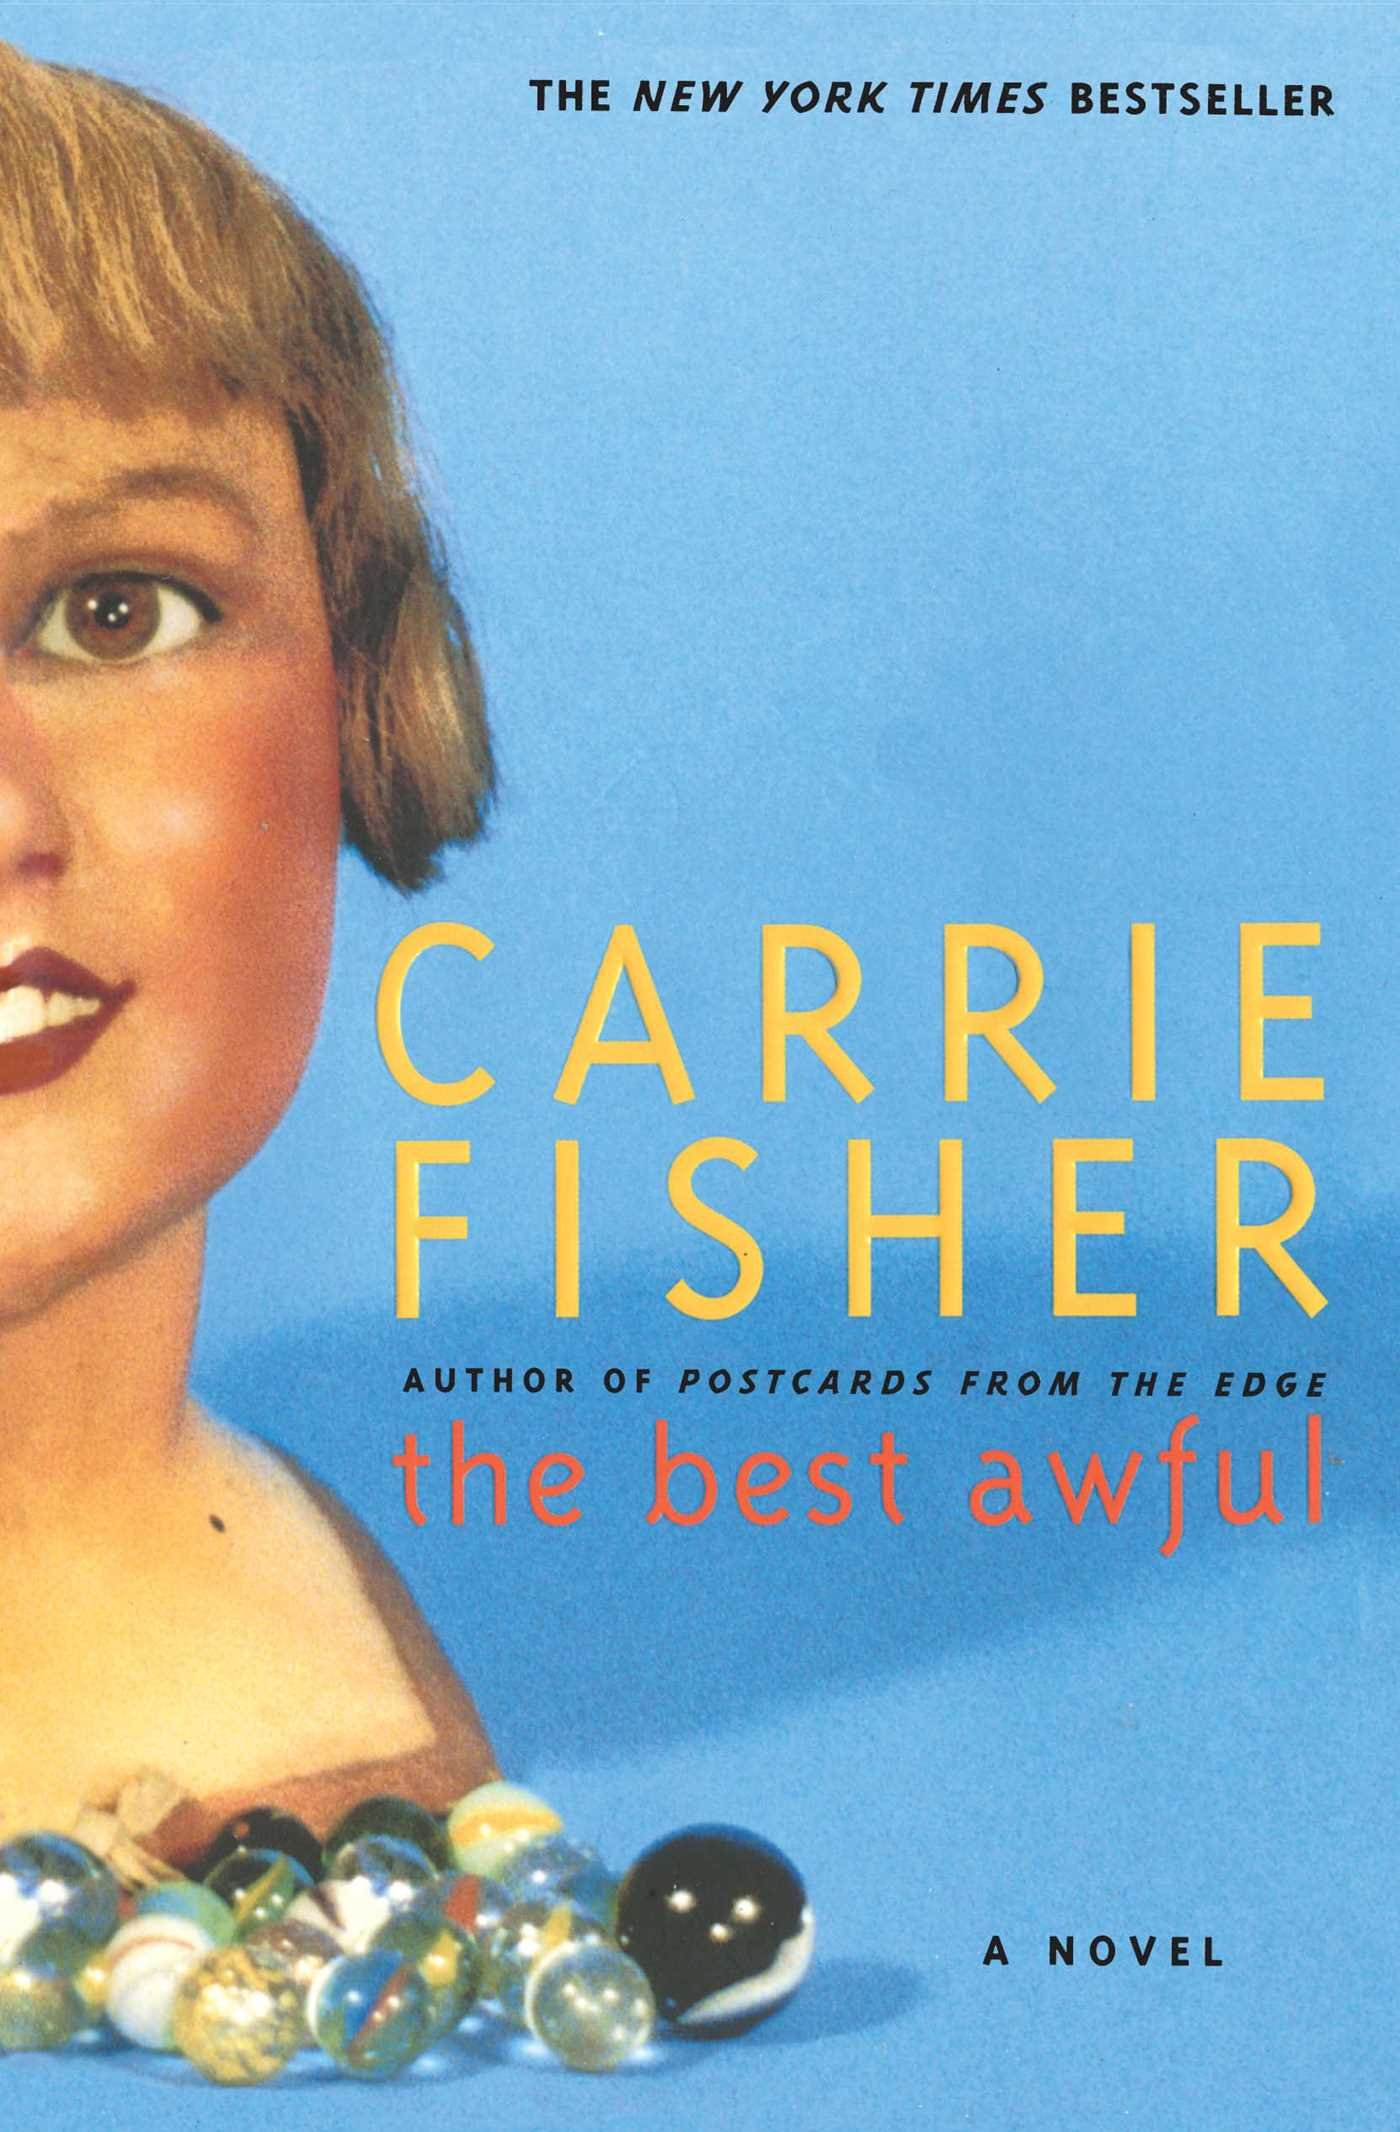 The Best Awful: A Novel: Carrie Fisher: 9780743269308: Amazon: Books